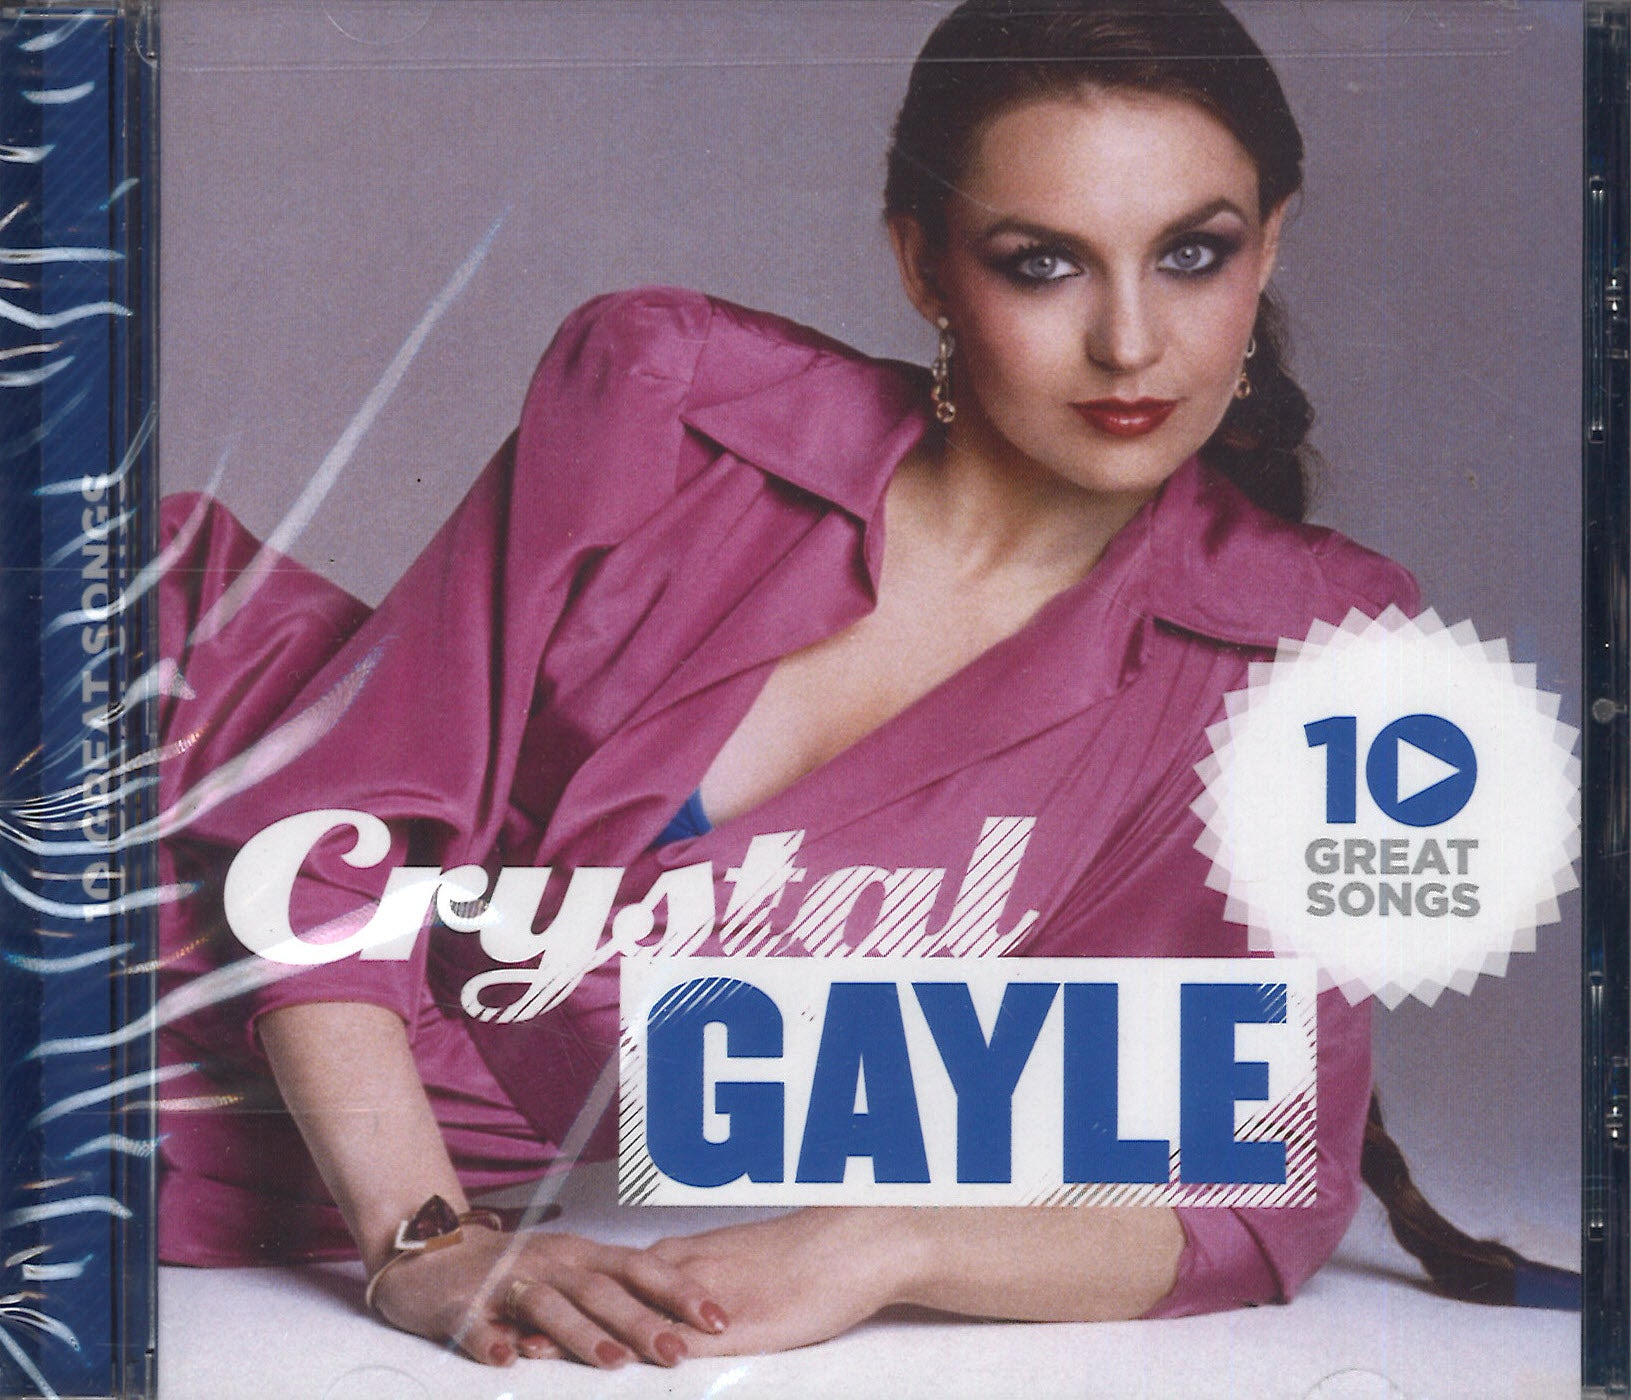 Crystal Gayle 10 Great Songs